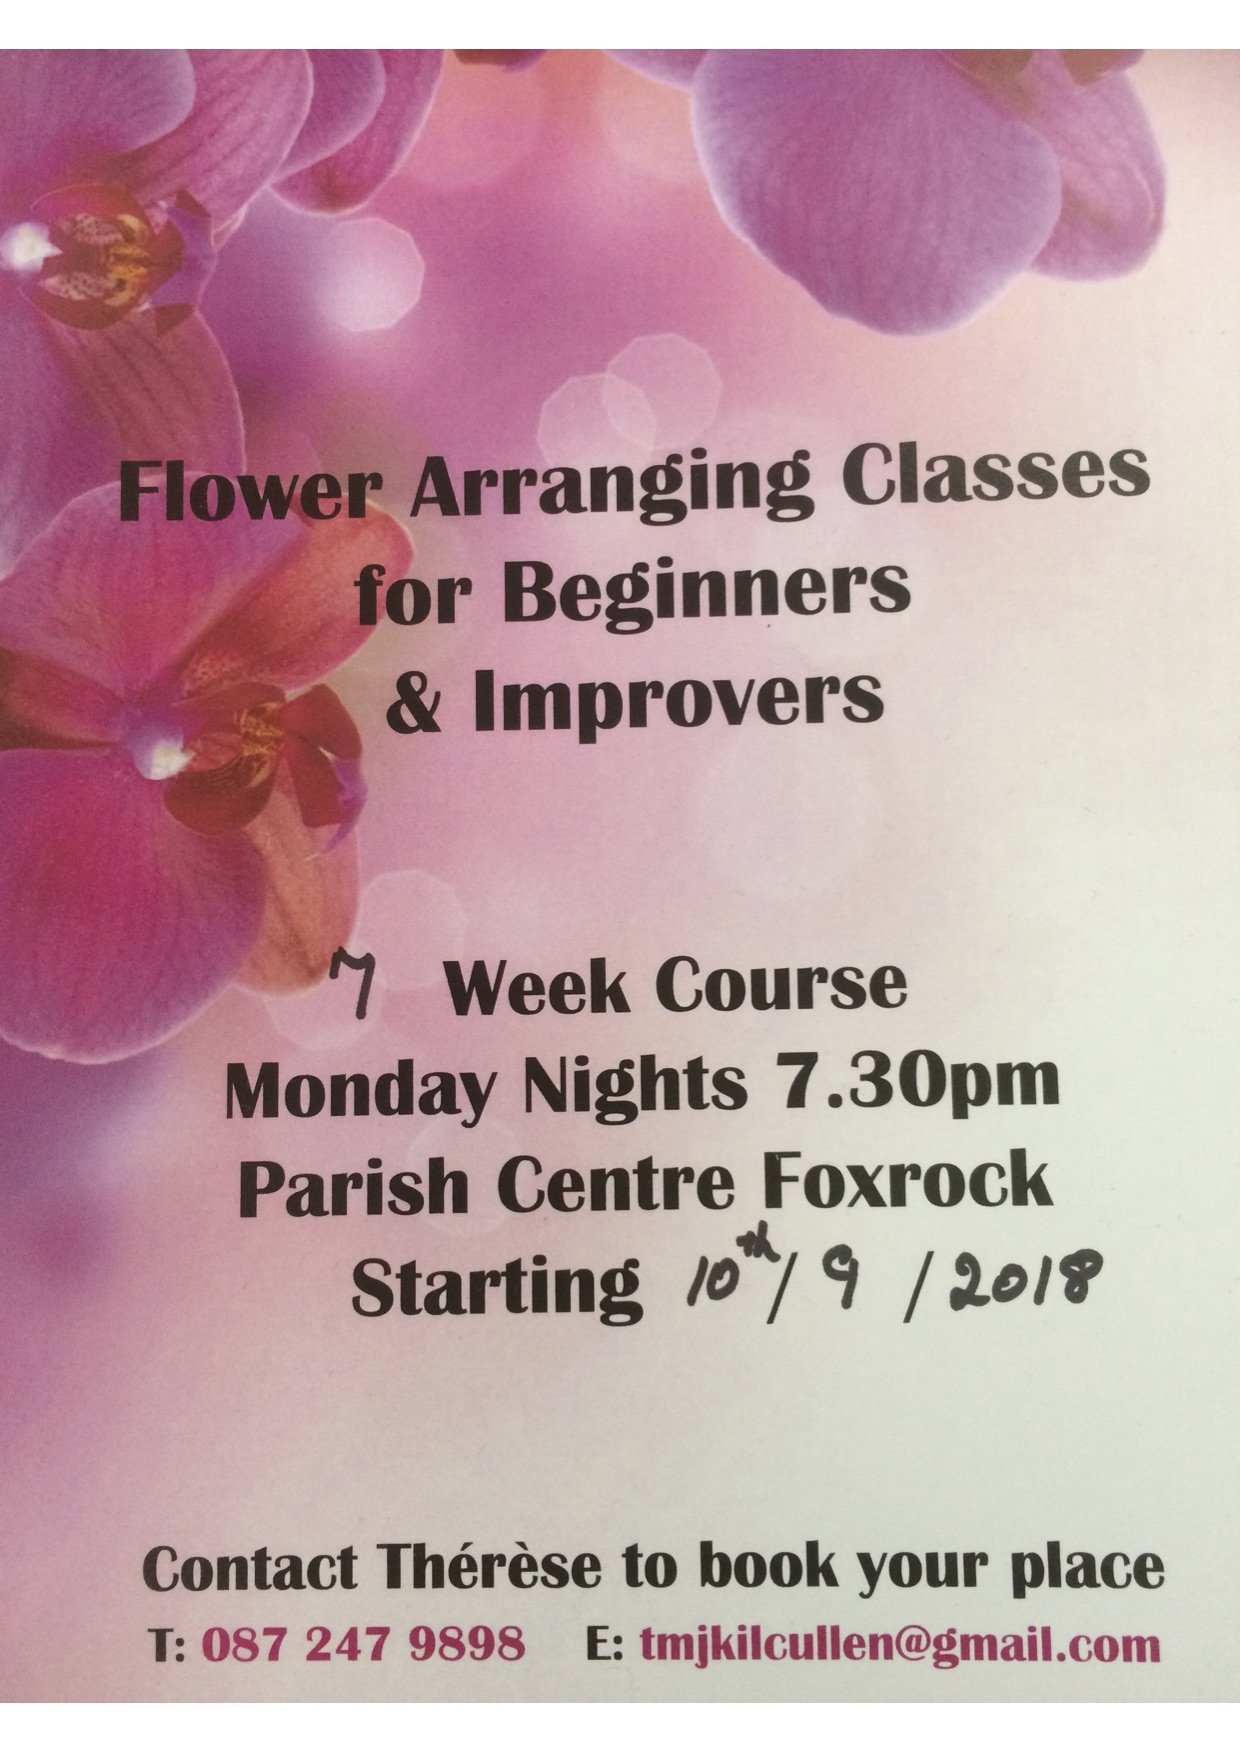 Starts Monday 19th November! Christmas Floral Decorations Classes